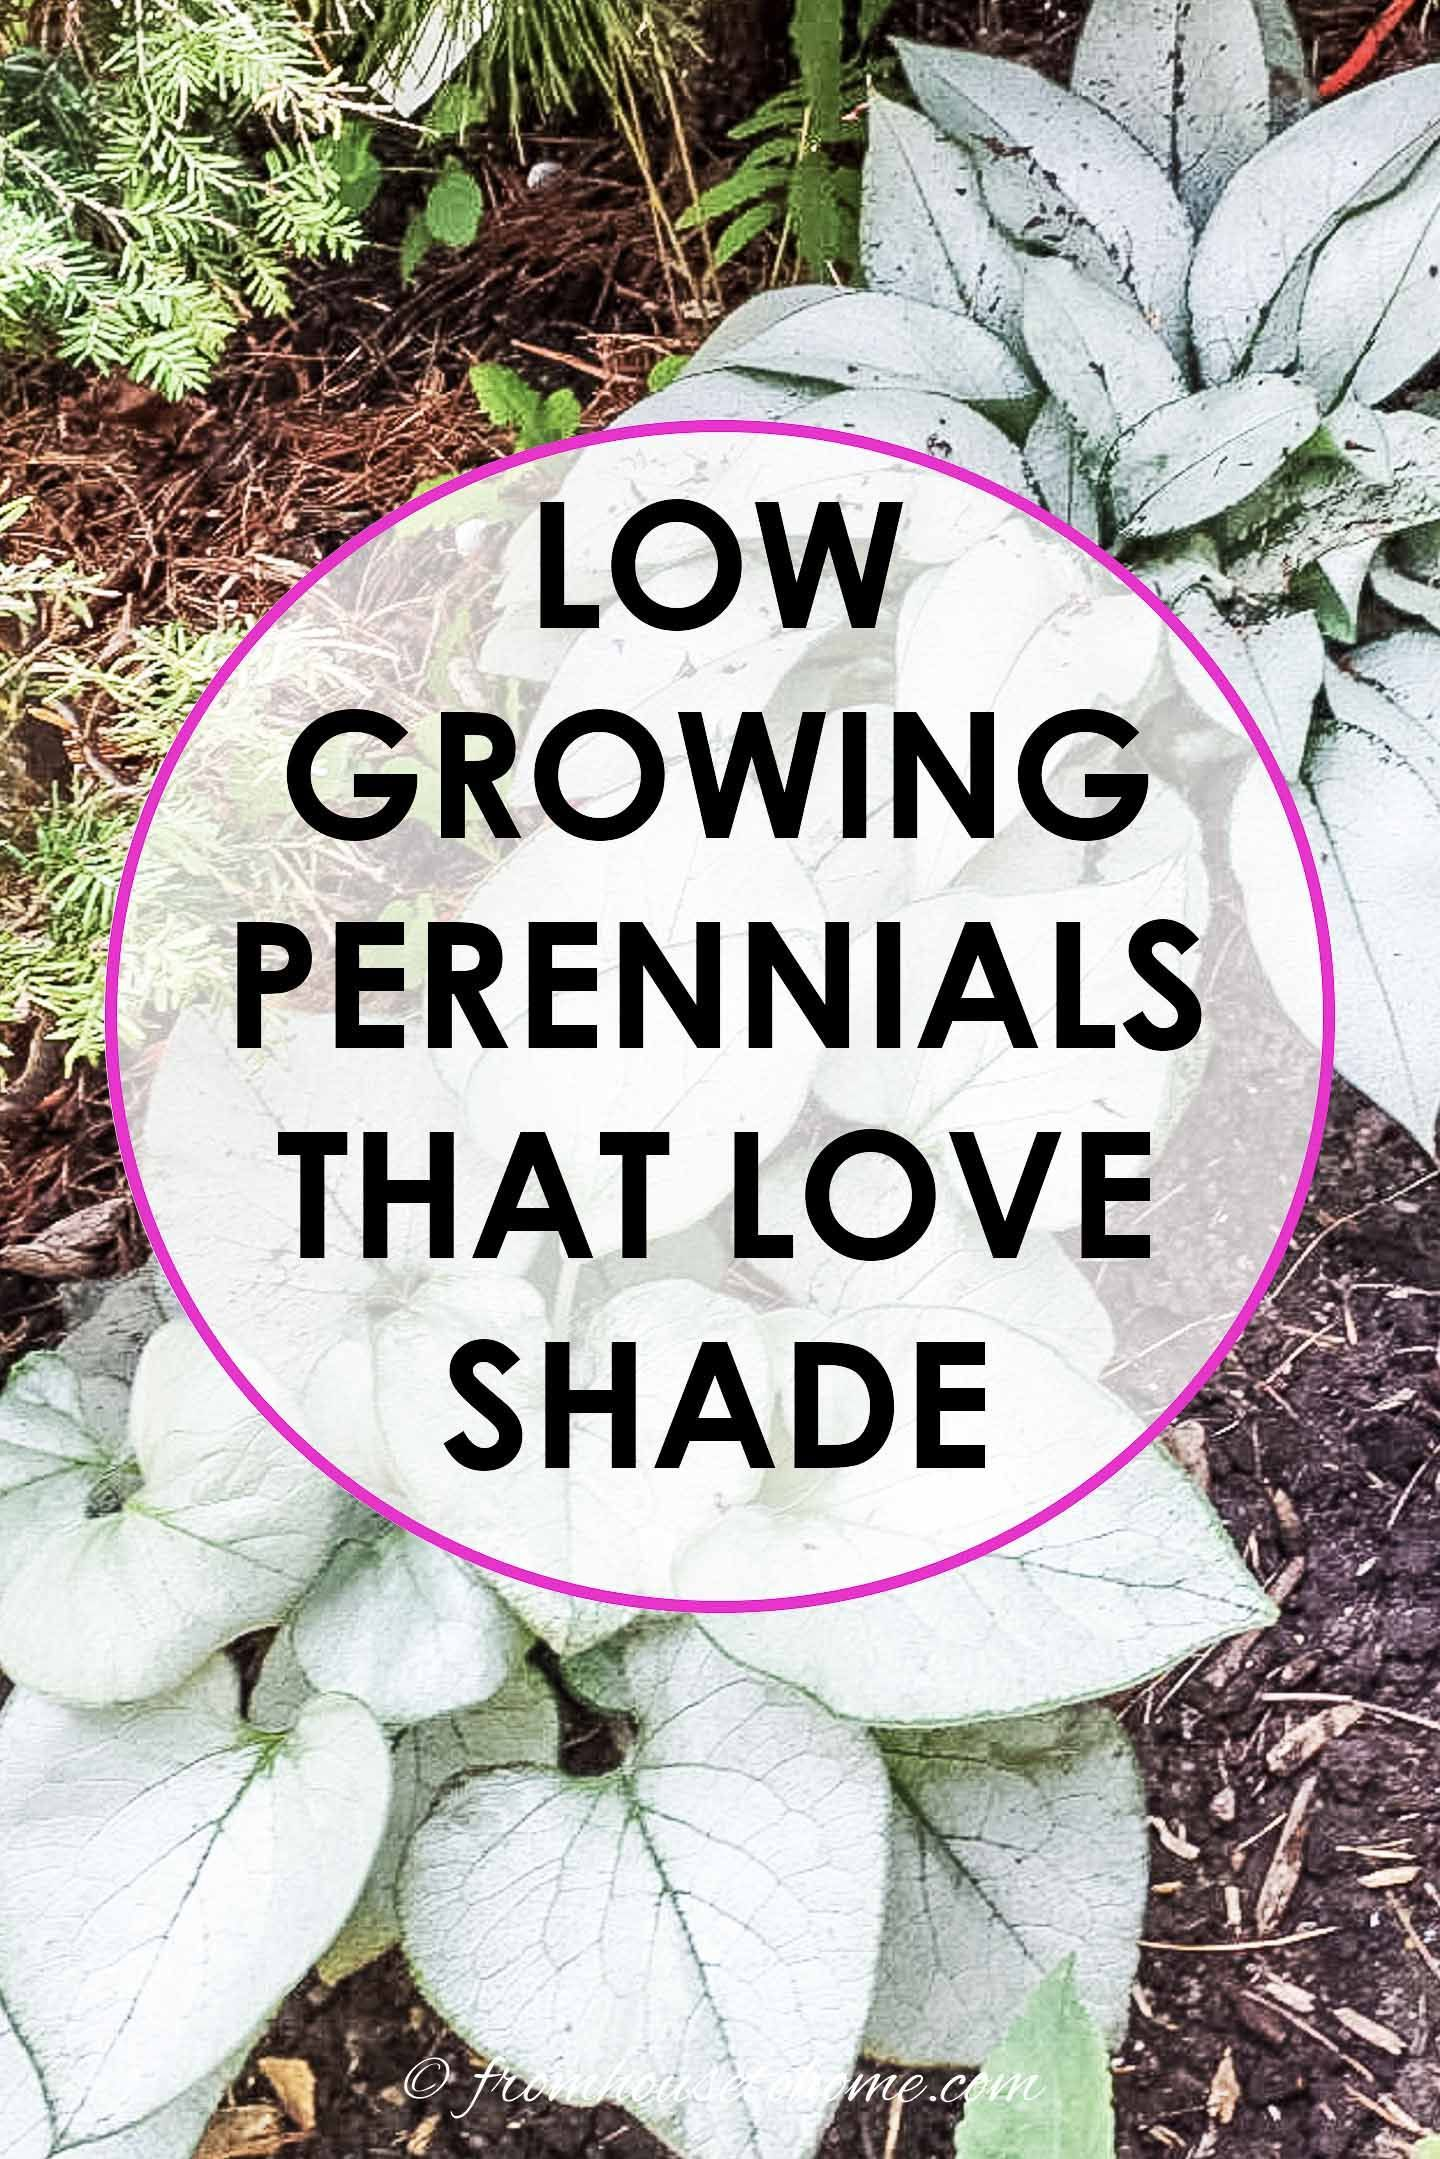 Perennial Ground Cover Full Sun: 21 Stunning Perennial Ground Cover Plants That Thrive In